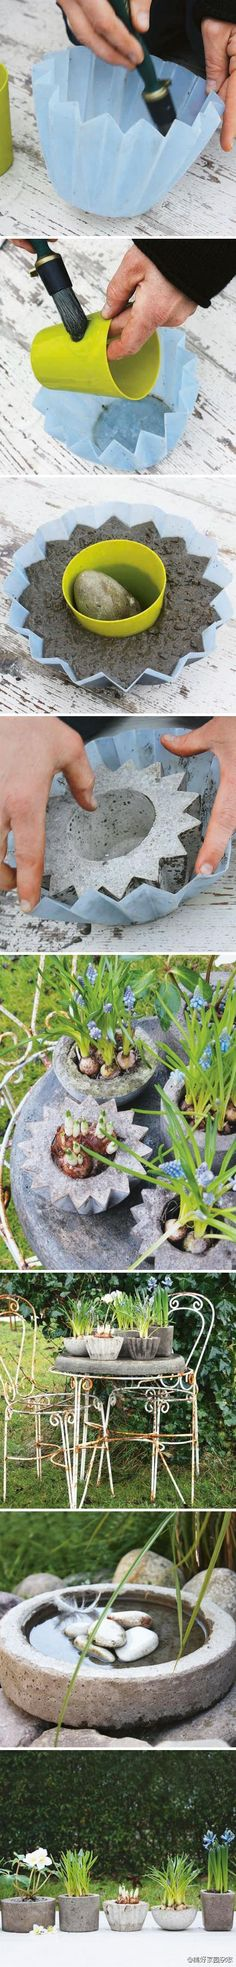 Make your own DIY concrete planters.